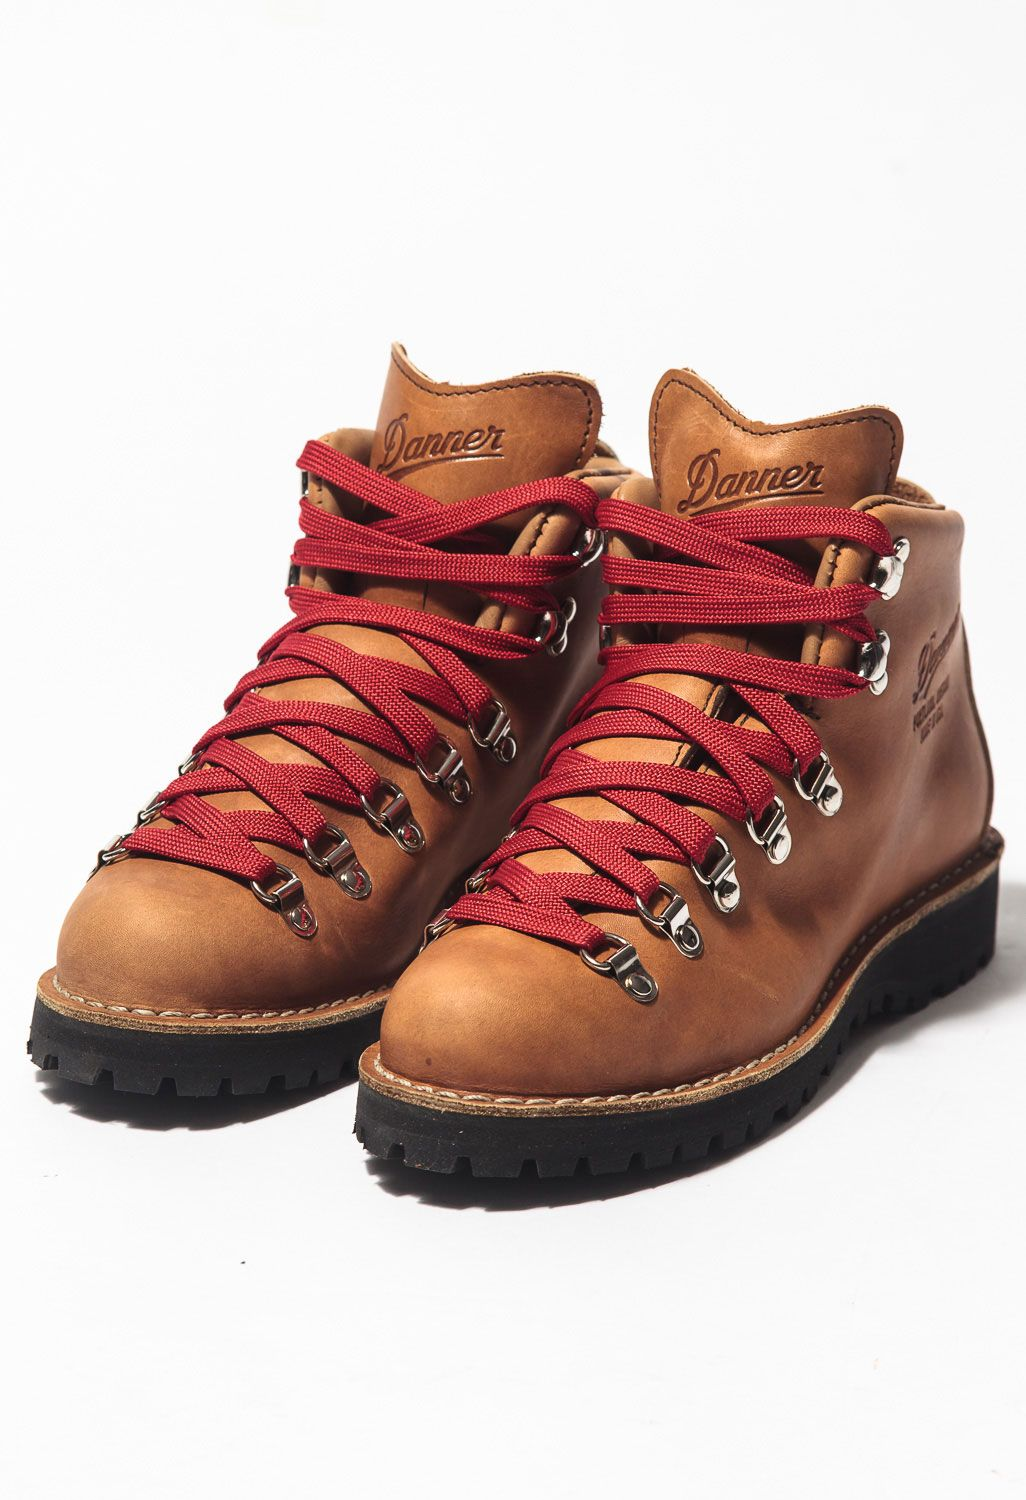 sports shoes affordable price new styles Danner Women's Mountain Light Boots